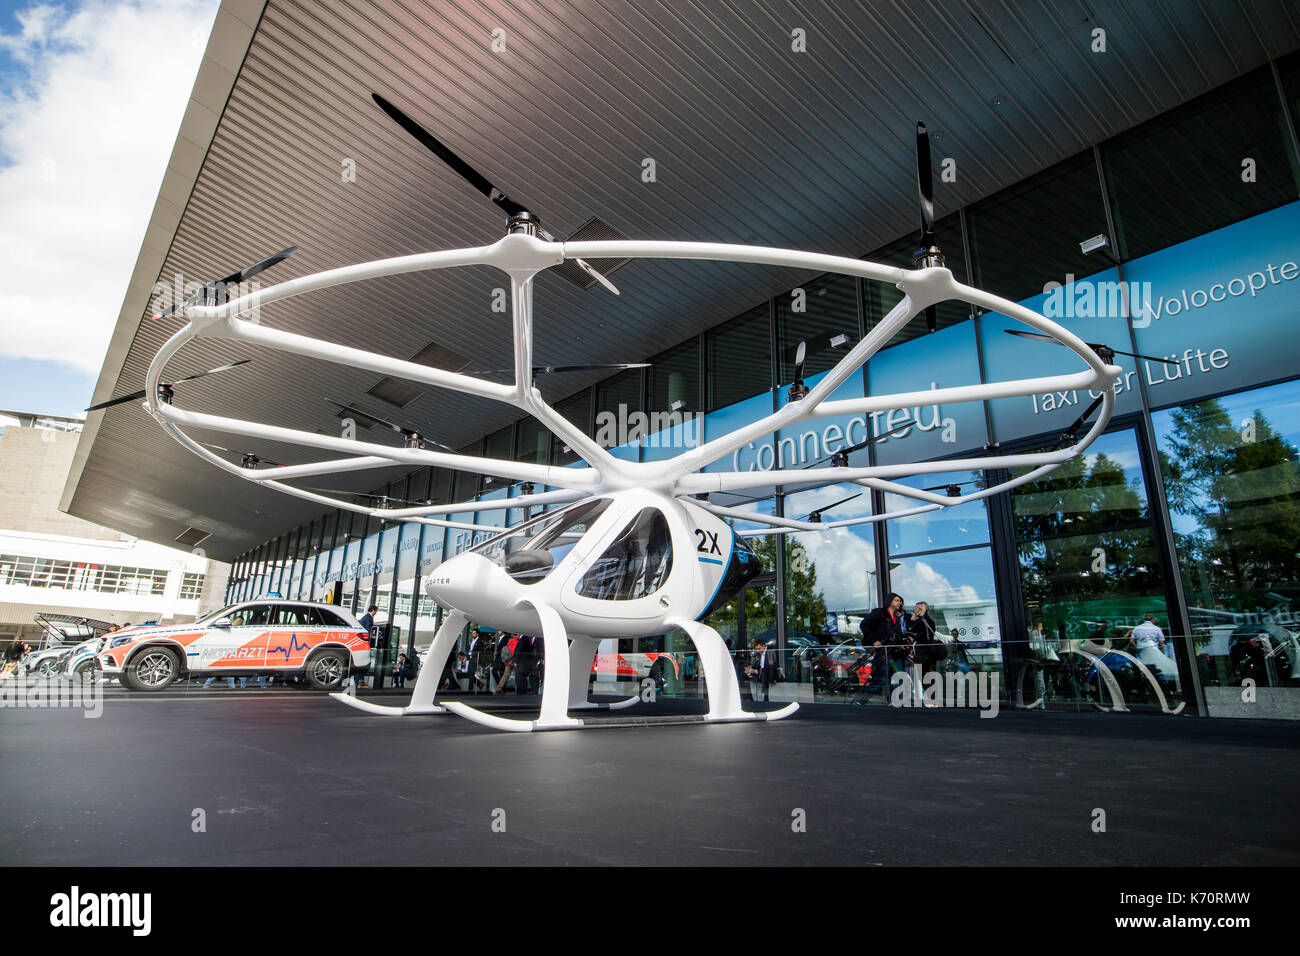 Frankfurt, Germany. 12th September, 2017. International Motor Show 2017 (IAA, Internationale Automobil-Ausstellung), Press Day: Volocopter 2x, world's first manned fully electric VTOL, vertical take-off and landing aircraft, multirotor helicopter. Credit: Christian Lademann - Stock Image